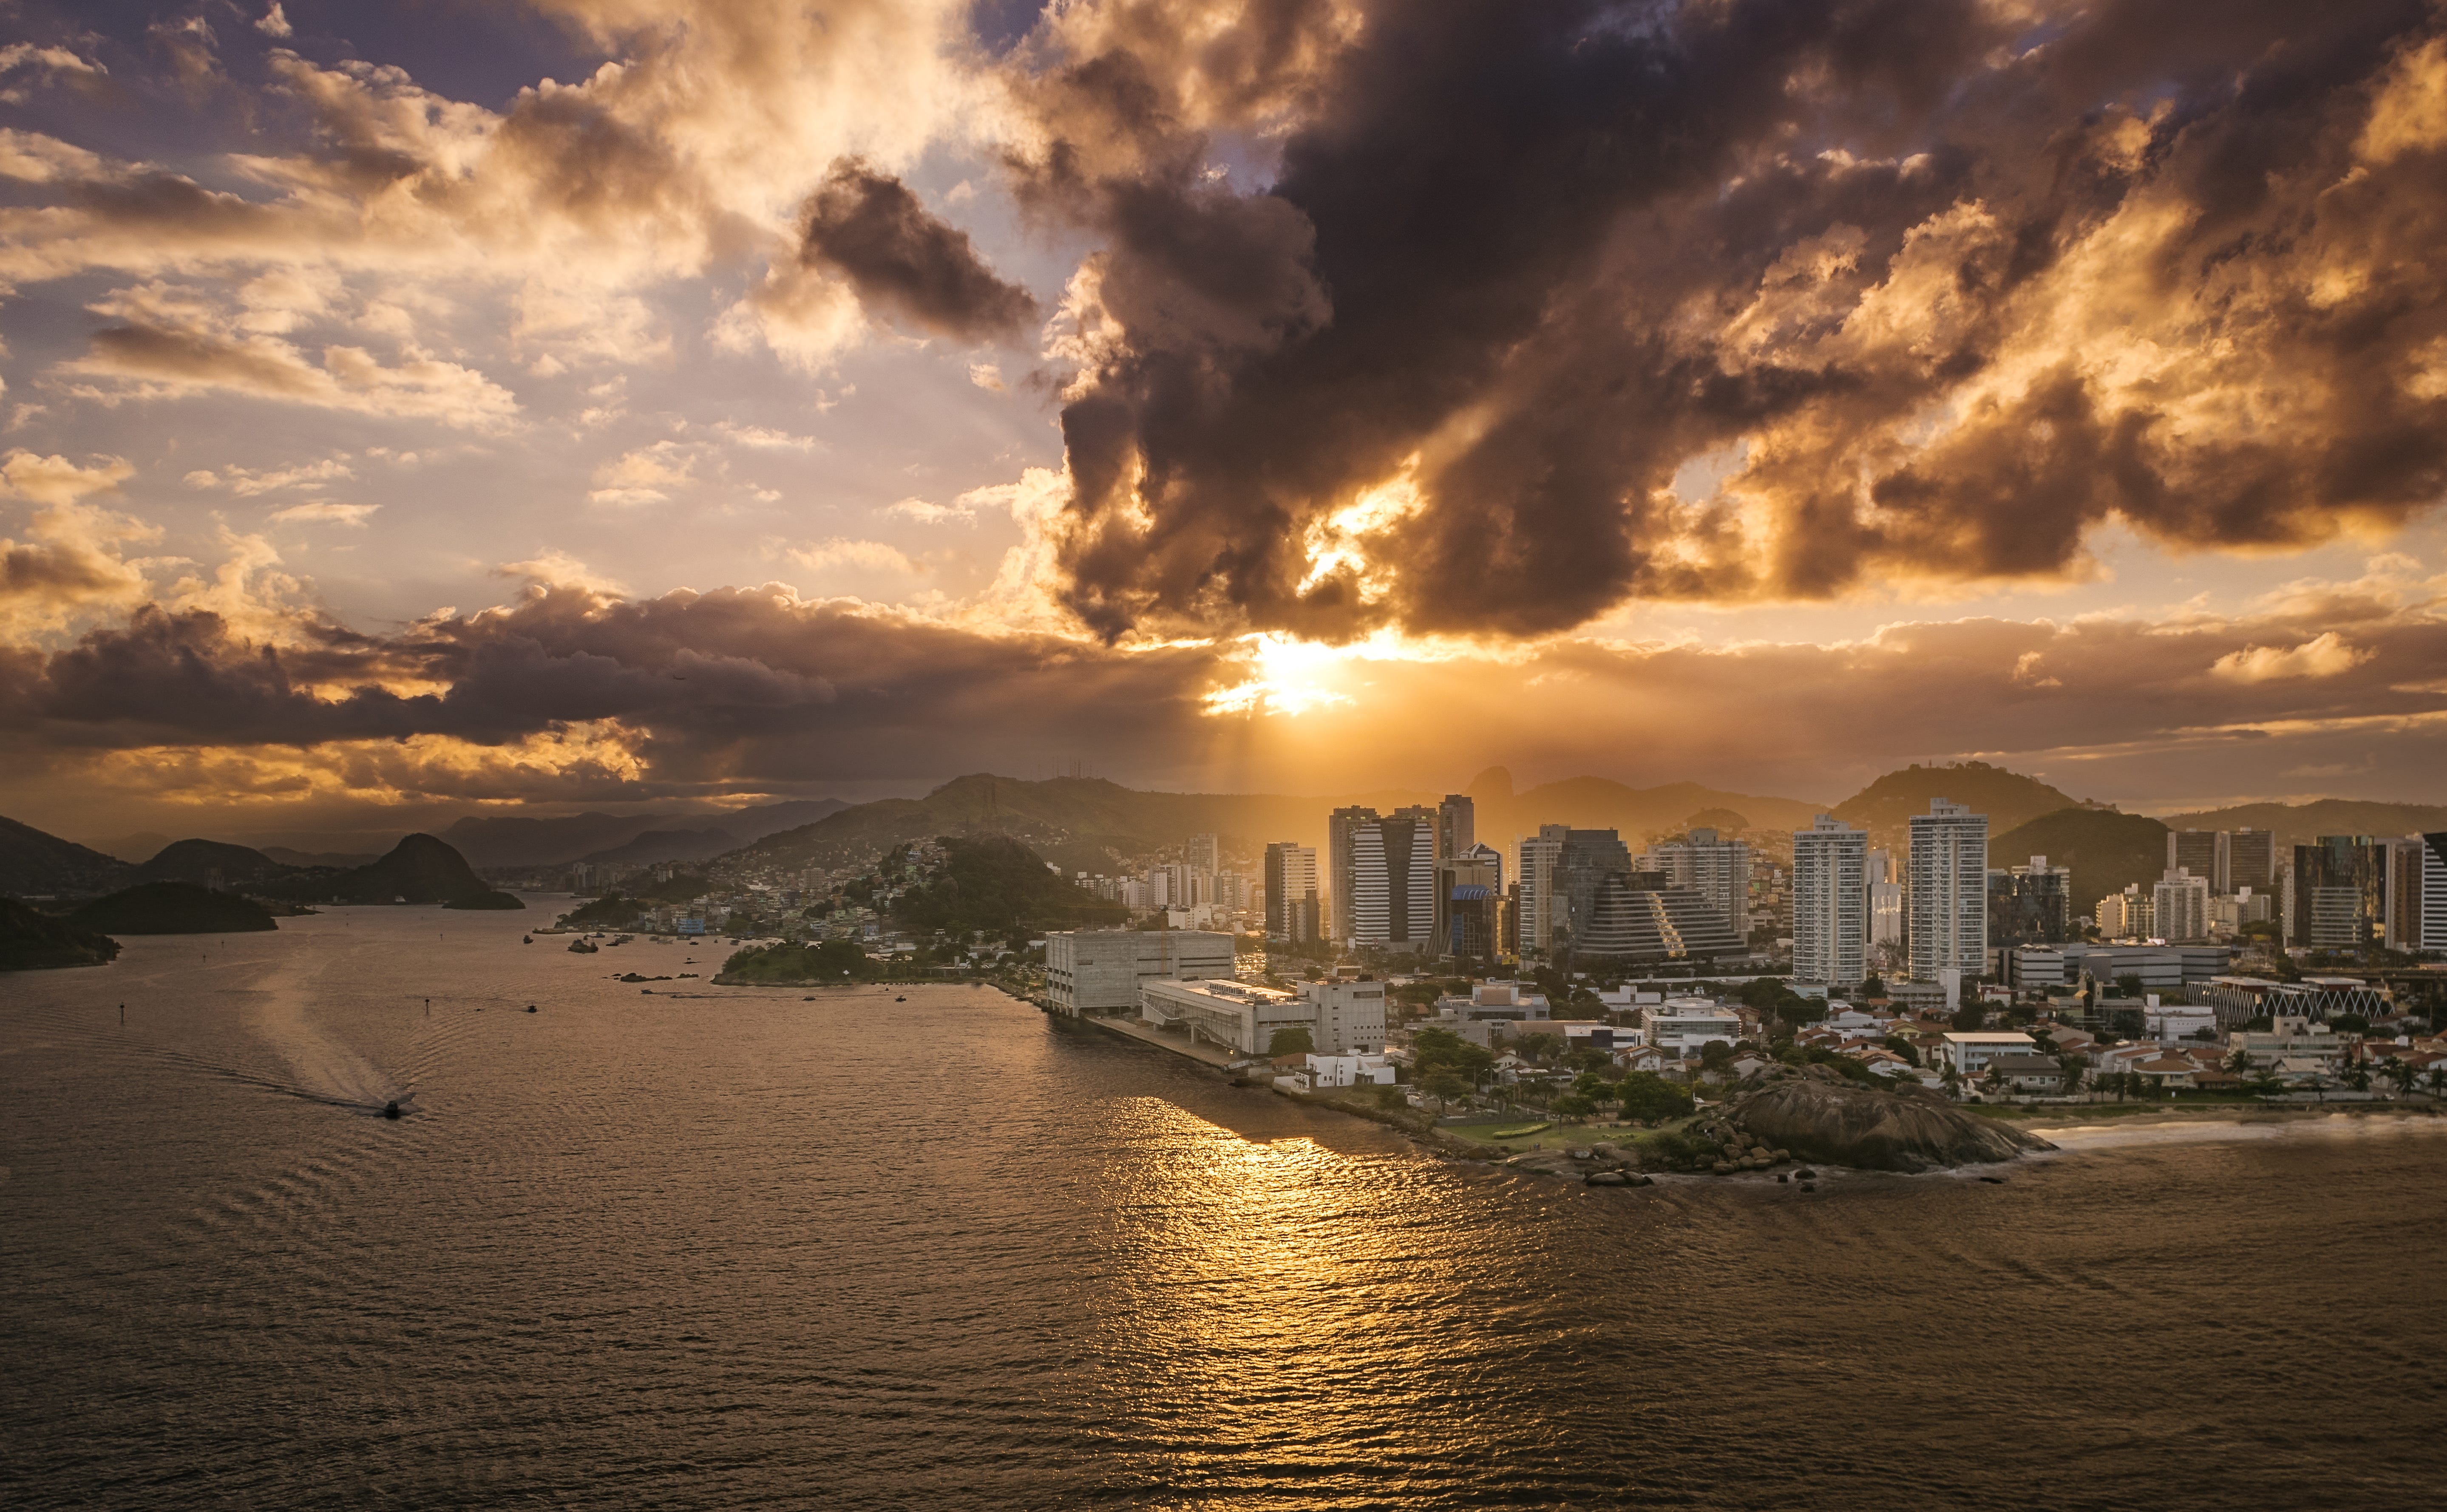 Travelers beware: The 50 most dangerous cities in the world   USA Today